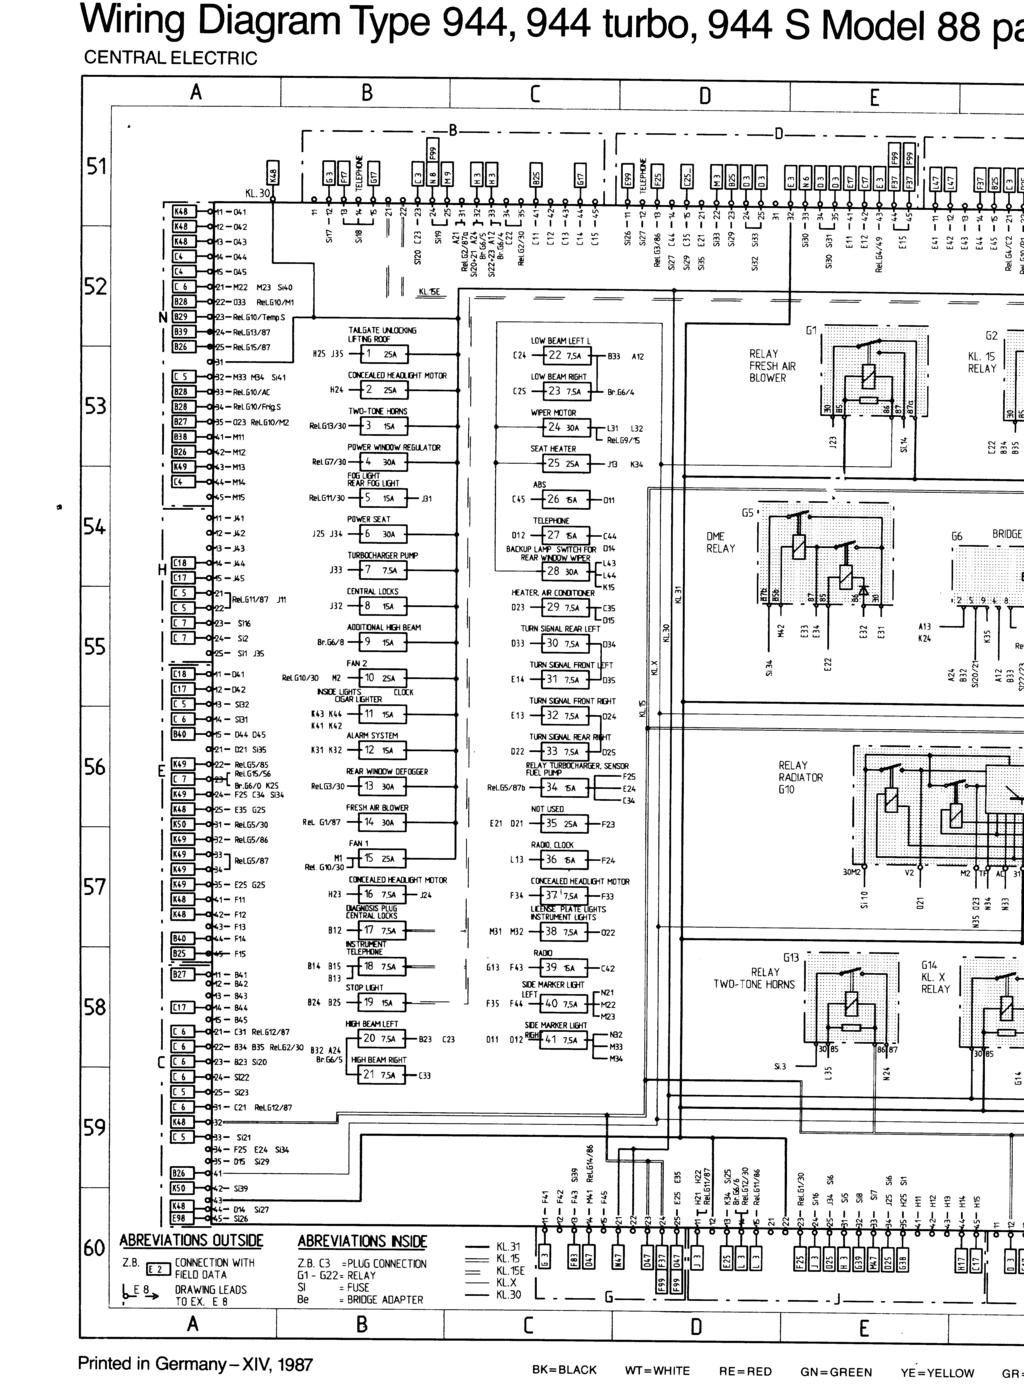 hight resolution of wiring diagram type 944 944 turbo 944 s model 88 pc central electrc a